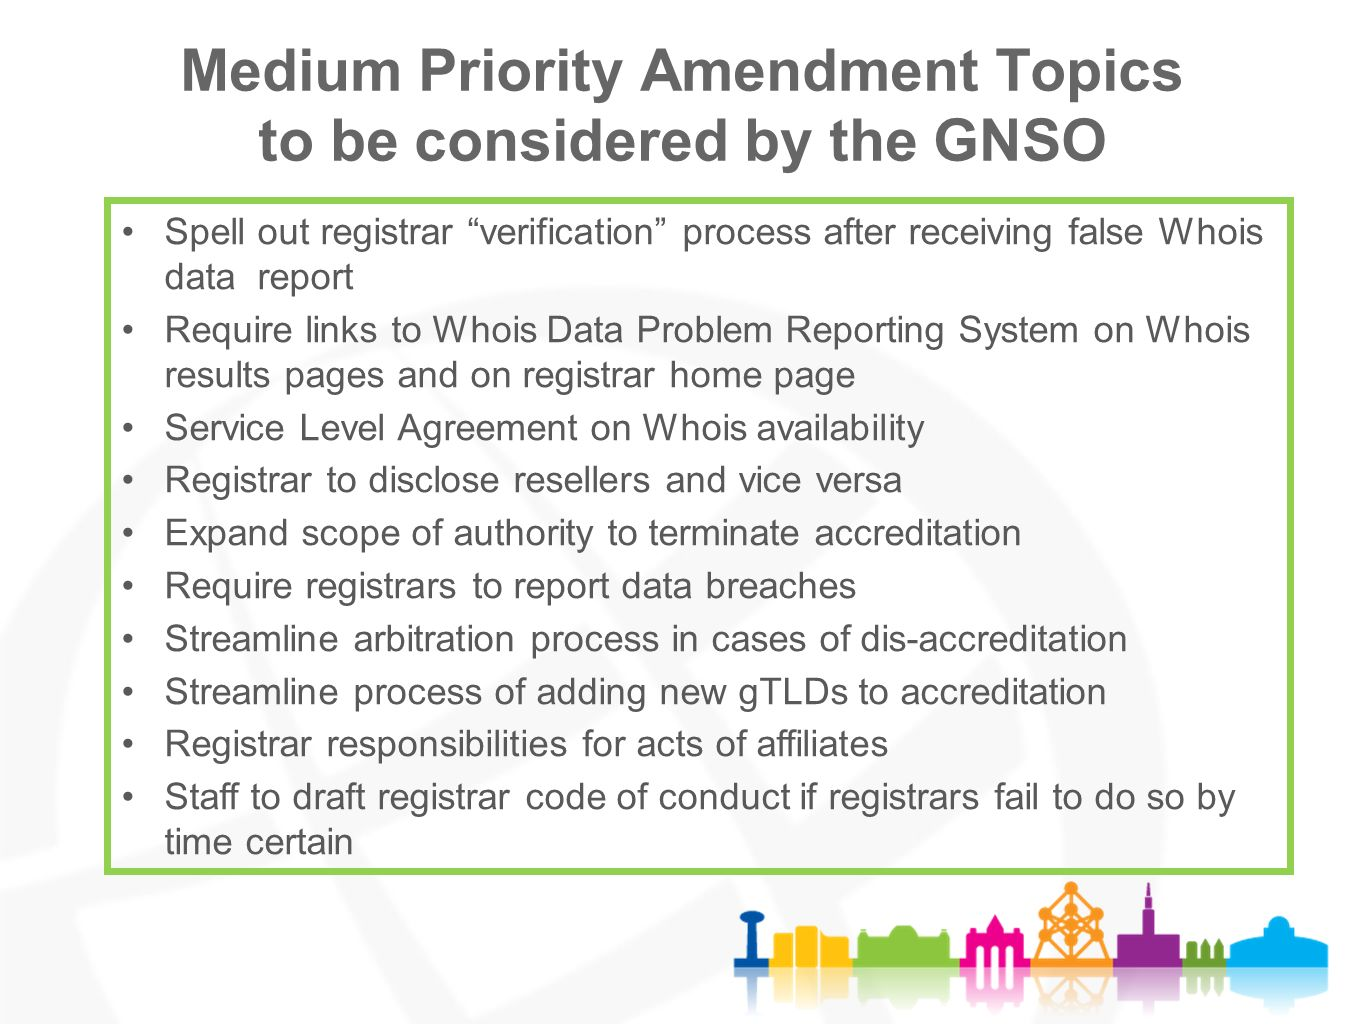 Medium Priority Amendment Topics to be considered by the GNSO Spell out registrar verification process after receiving false Whois data report Require links to Whois Data Problem Reporting System on Whois results pages and on registrar home page Service Level Agreement on Whois availability Registrar to disclose resellers and vice versa Expand scope of authority to terminate accreditation Require registrars to report data breaches Streamline arbitration process in cases of dis-accreditation Streamline process of adding new gTLDs to accreditation Registrar responsibilities for acts of affiliates Staff to draft registrar code of conduct if registrars fail to do so by time certain